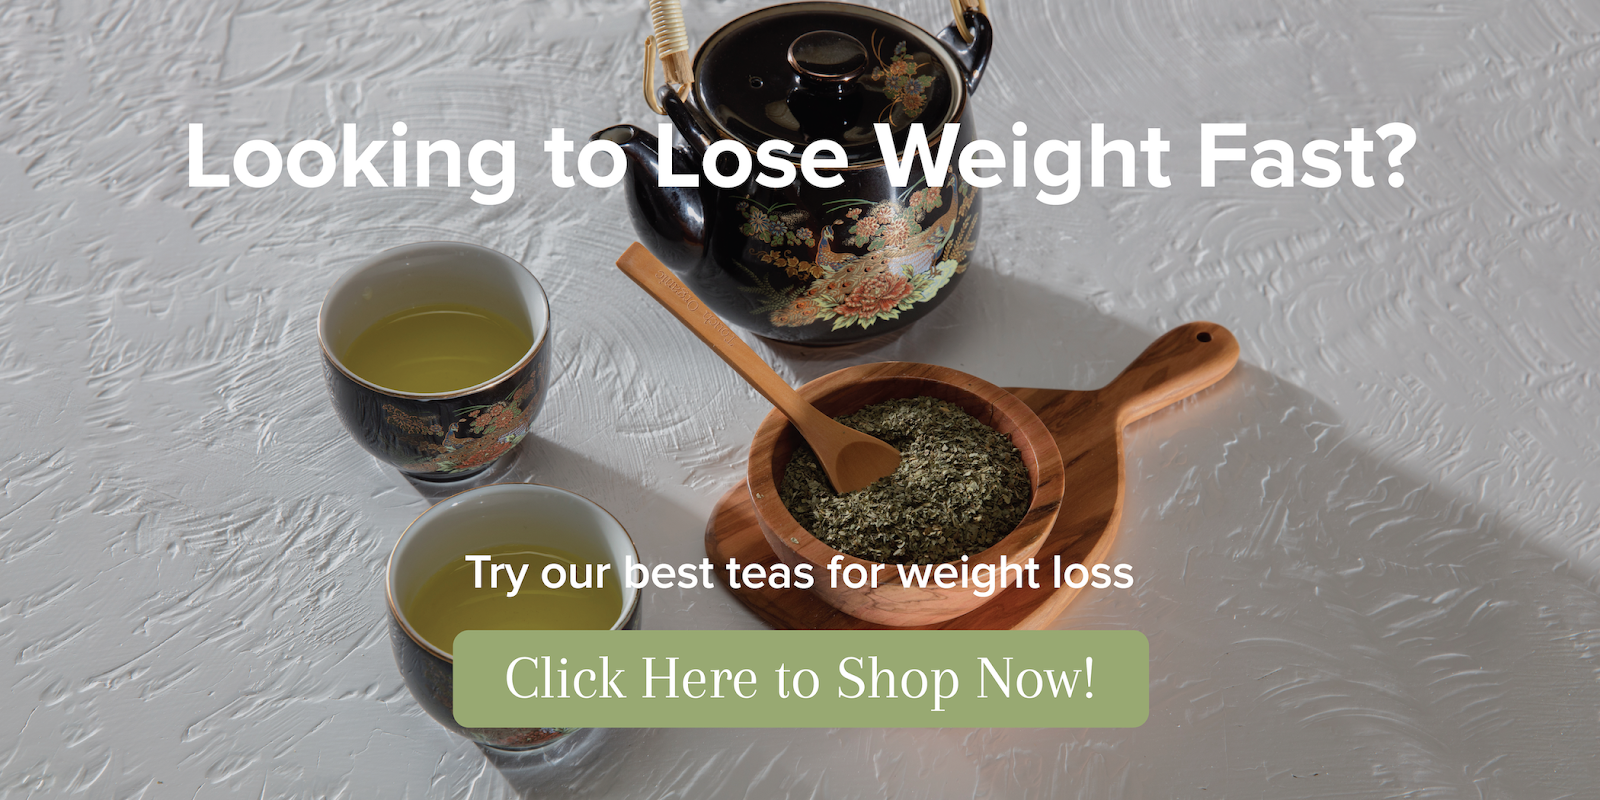 Shed Pounds And Boost Fat Burning With The Best Teas For Weight Loss